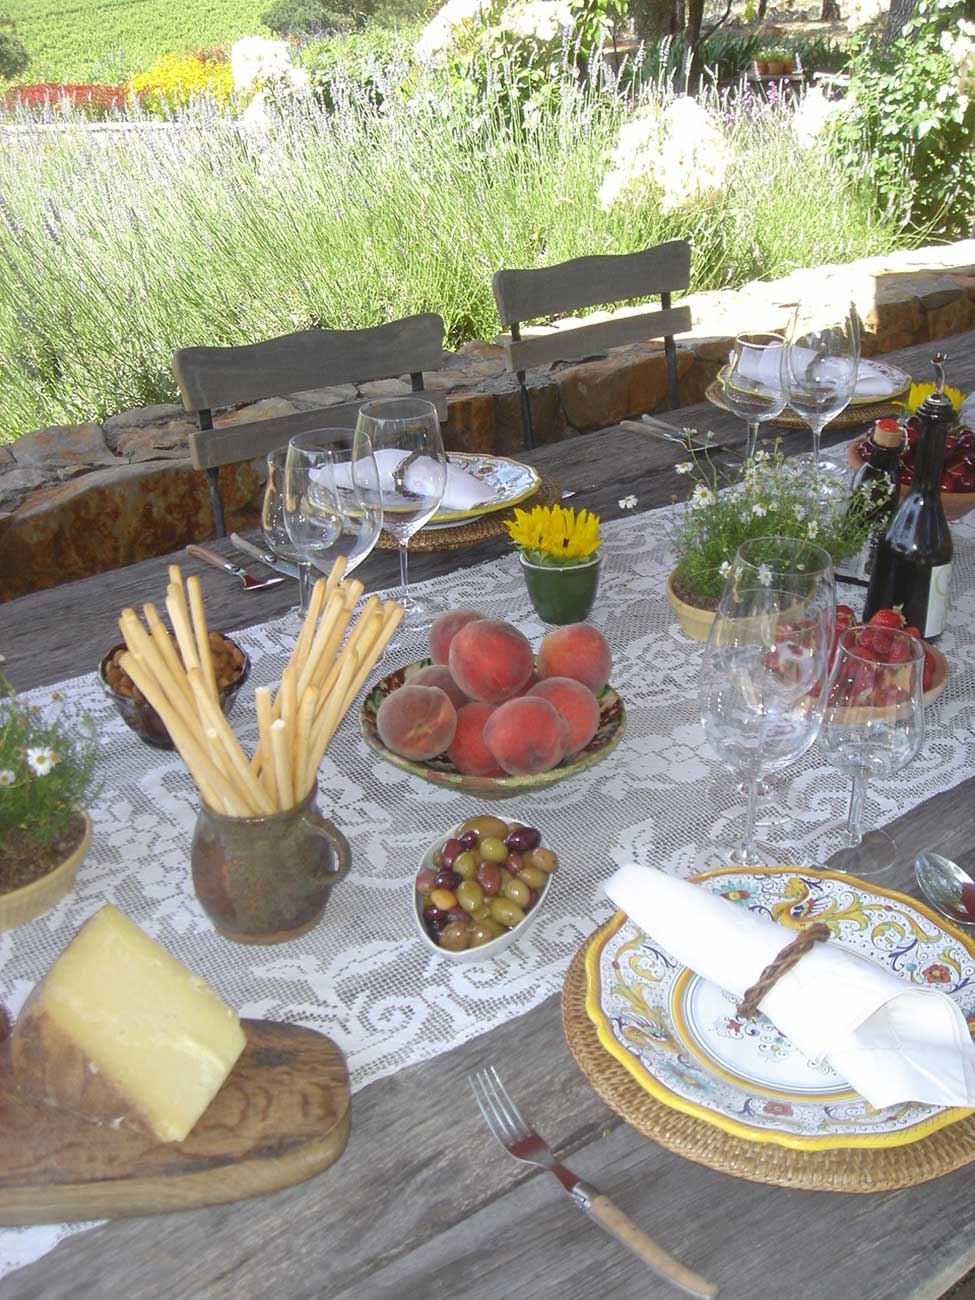 Tabletop design with bowls of peaches, olives, wild flowers and crystal